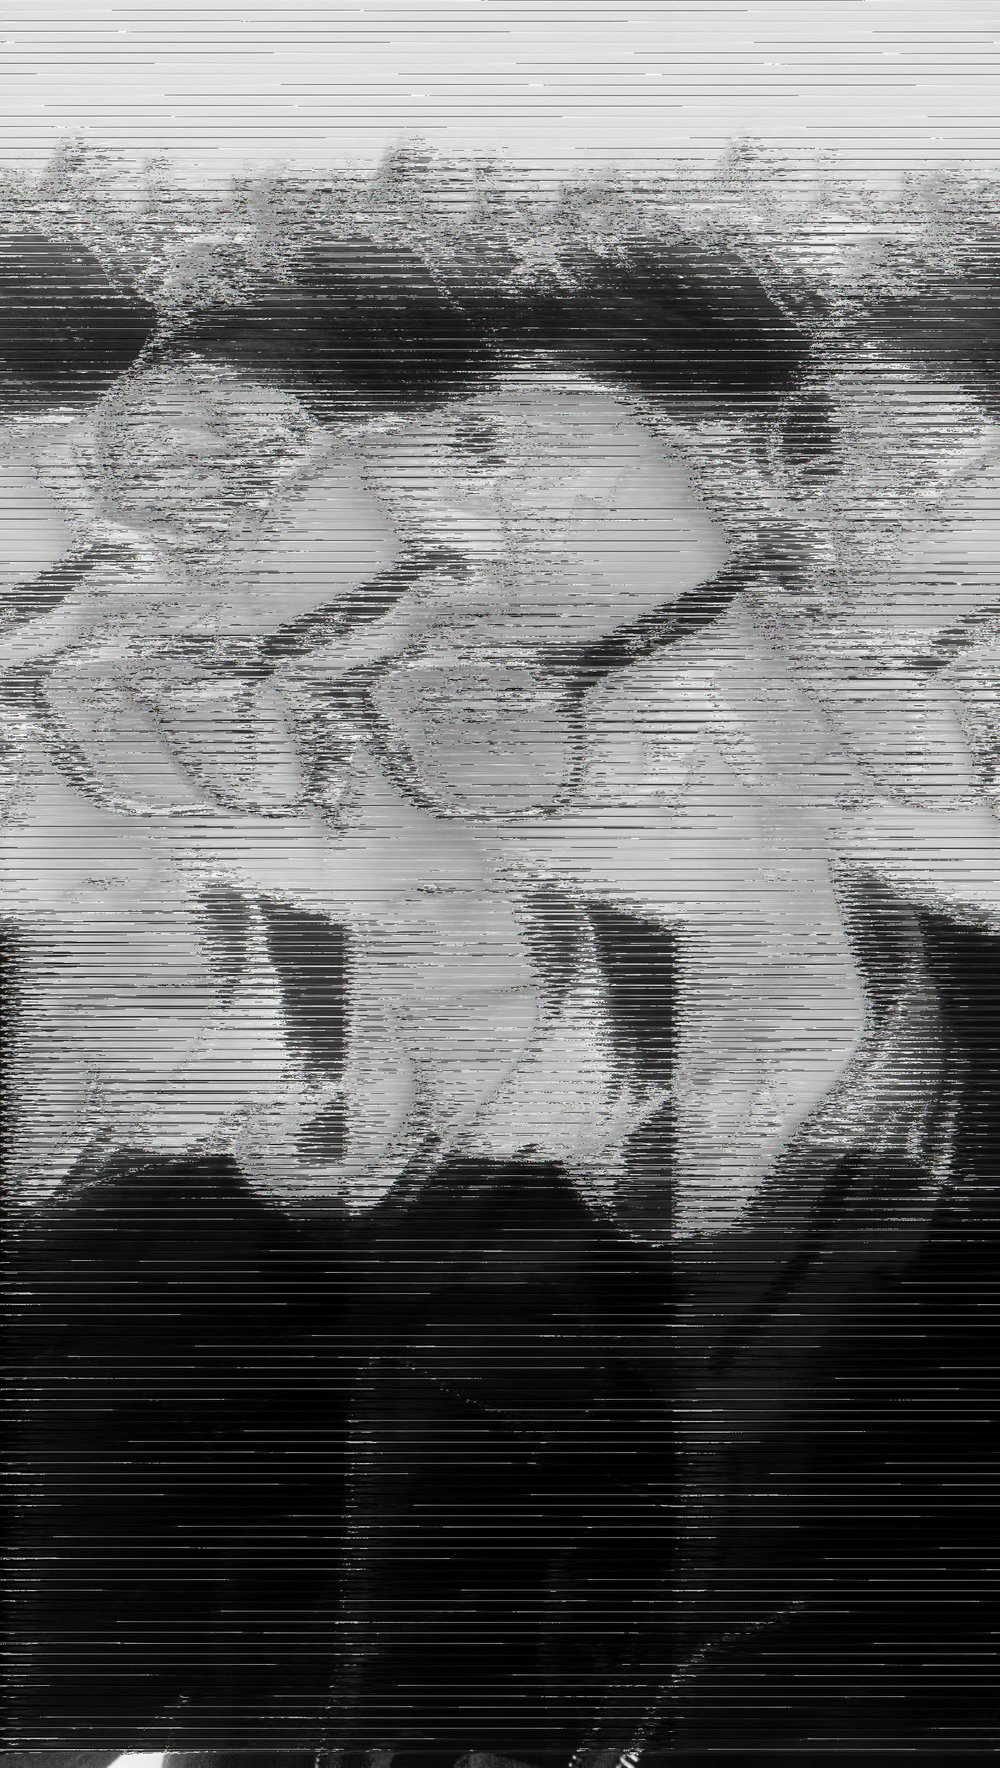 Glitched Image - The same image as above after been loaded into Audacity and distorted. This image has phaser, reverb, and wahwah effects rendered visually. Click the audio block bellow to hear this image.